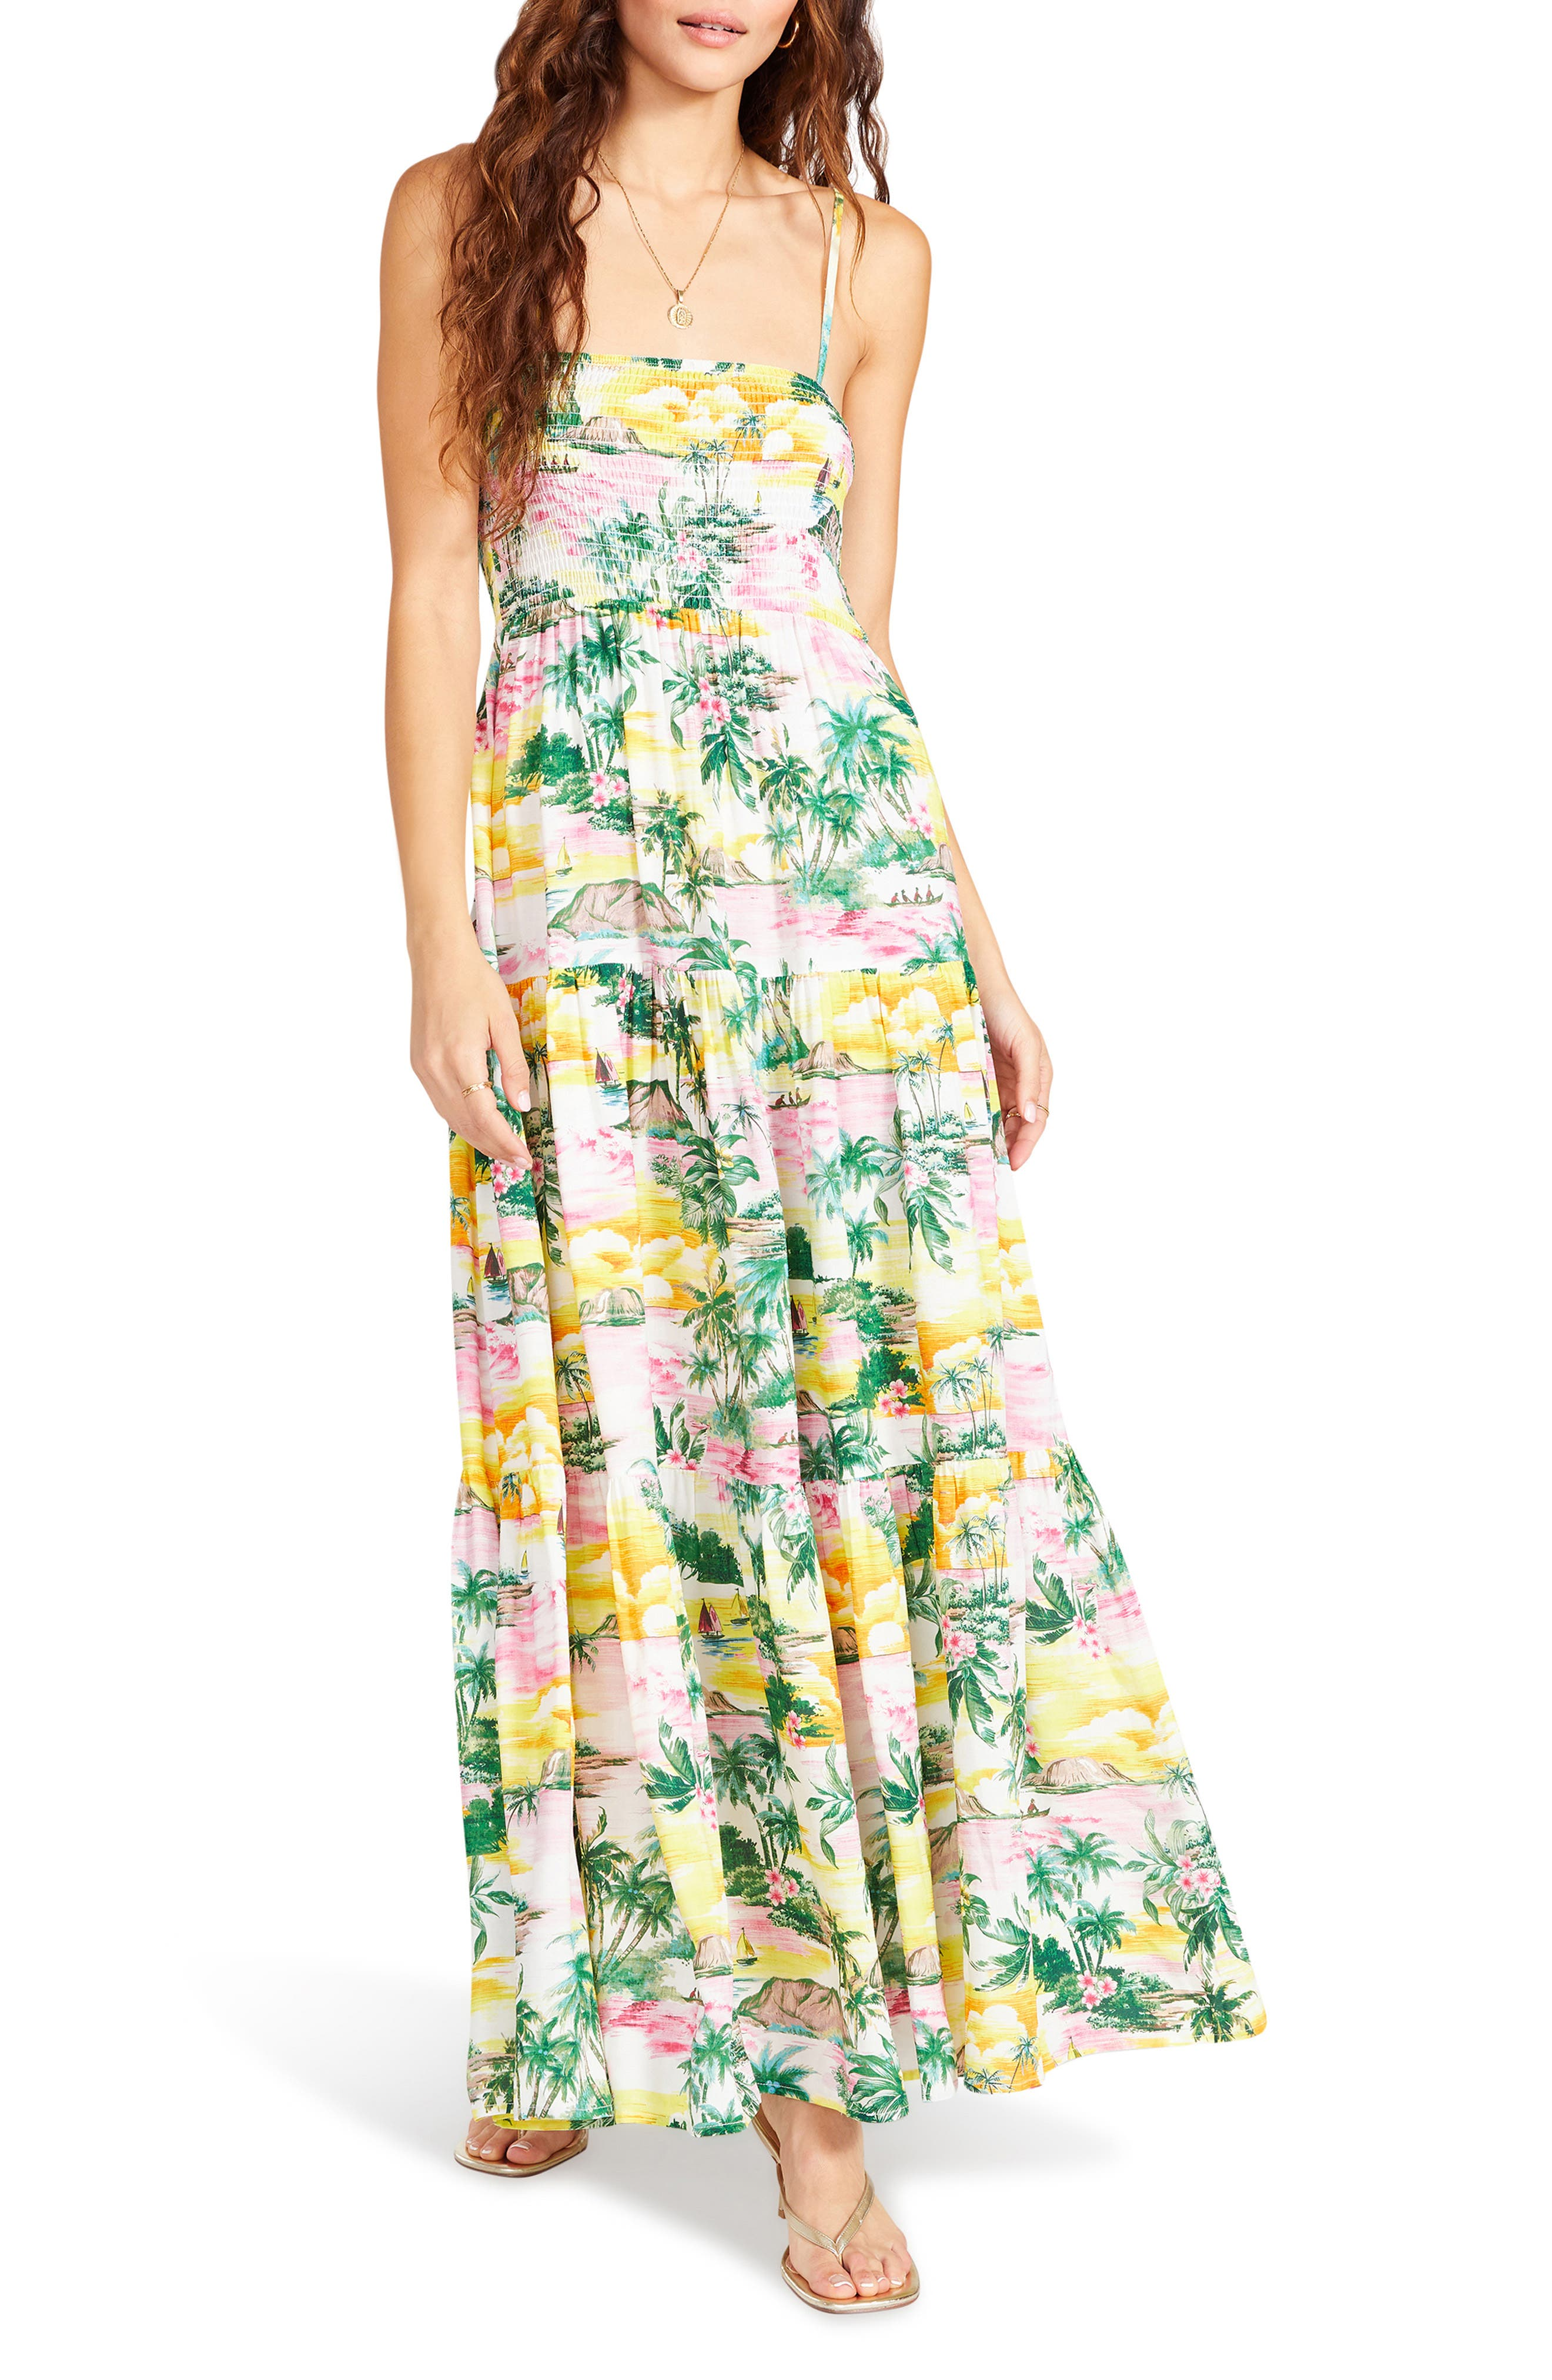 This Is Maui Do It Maxi Dress